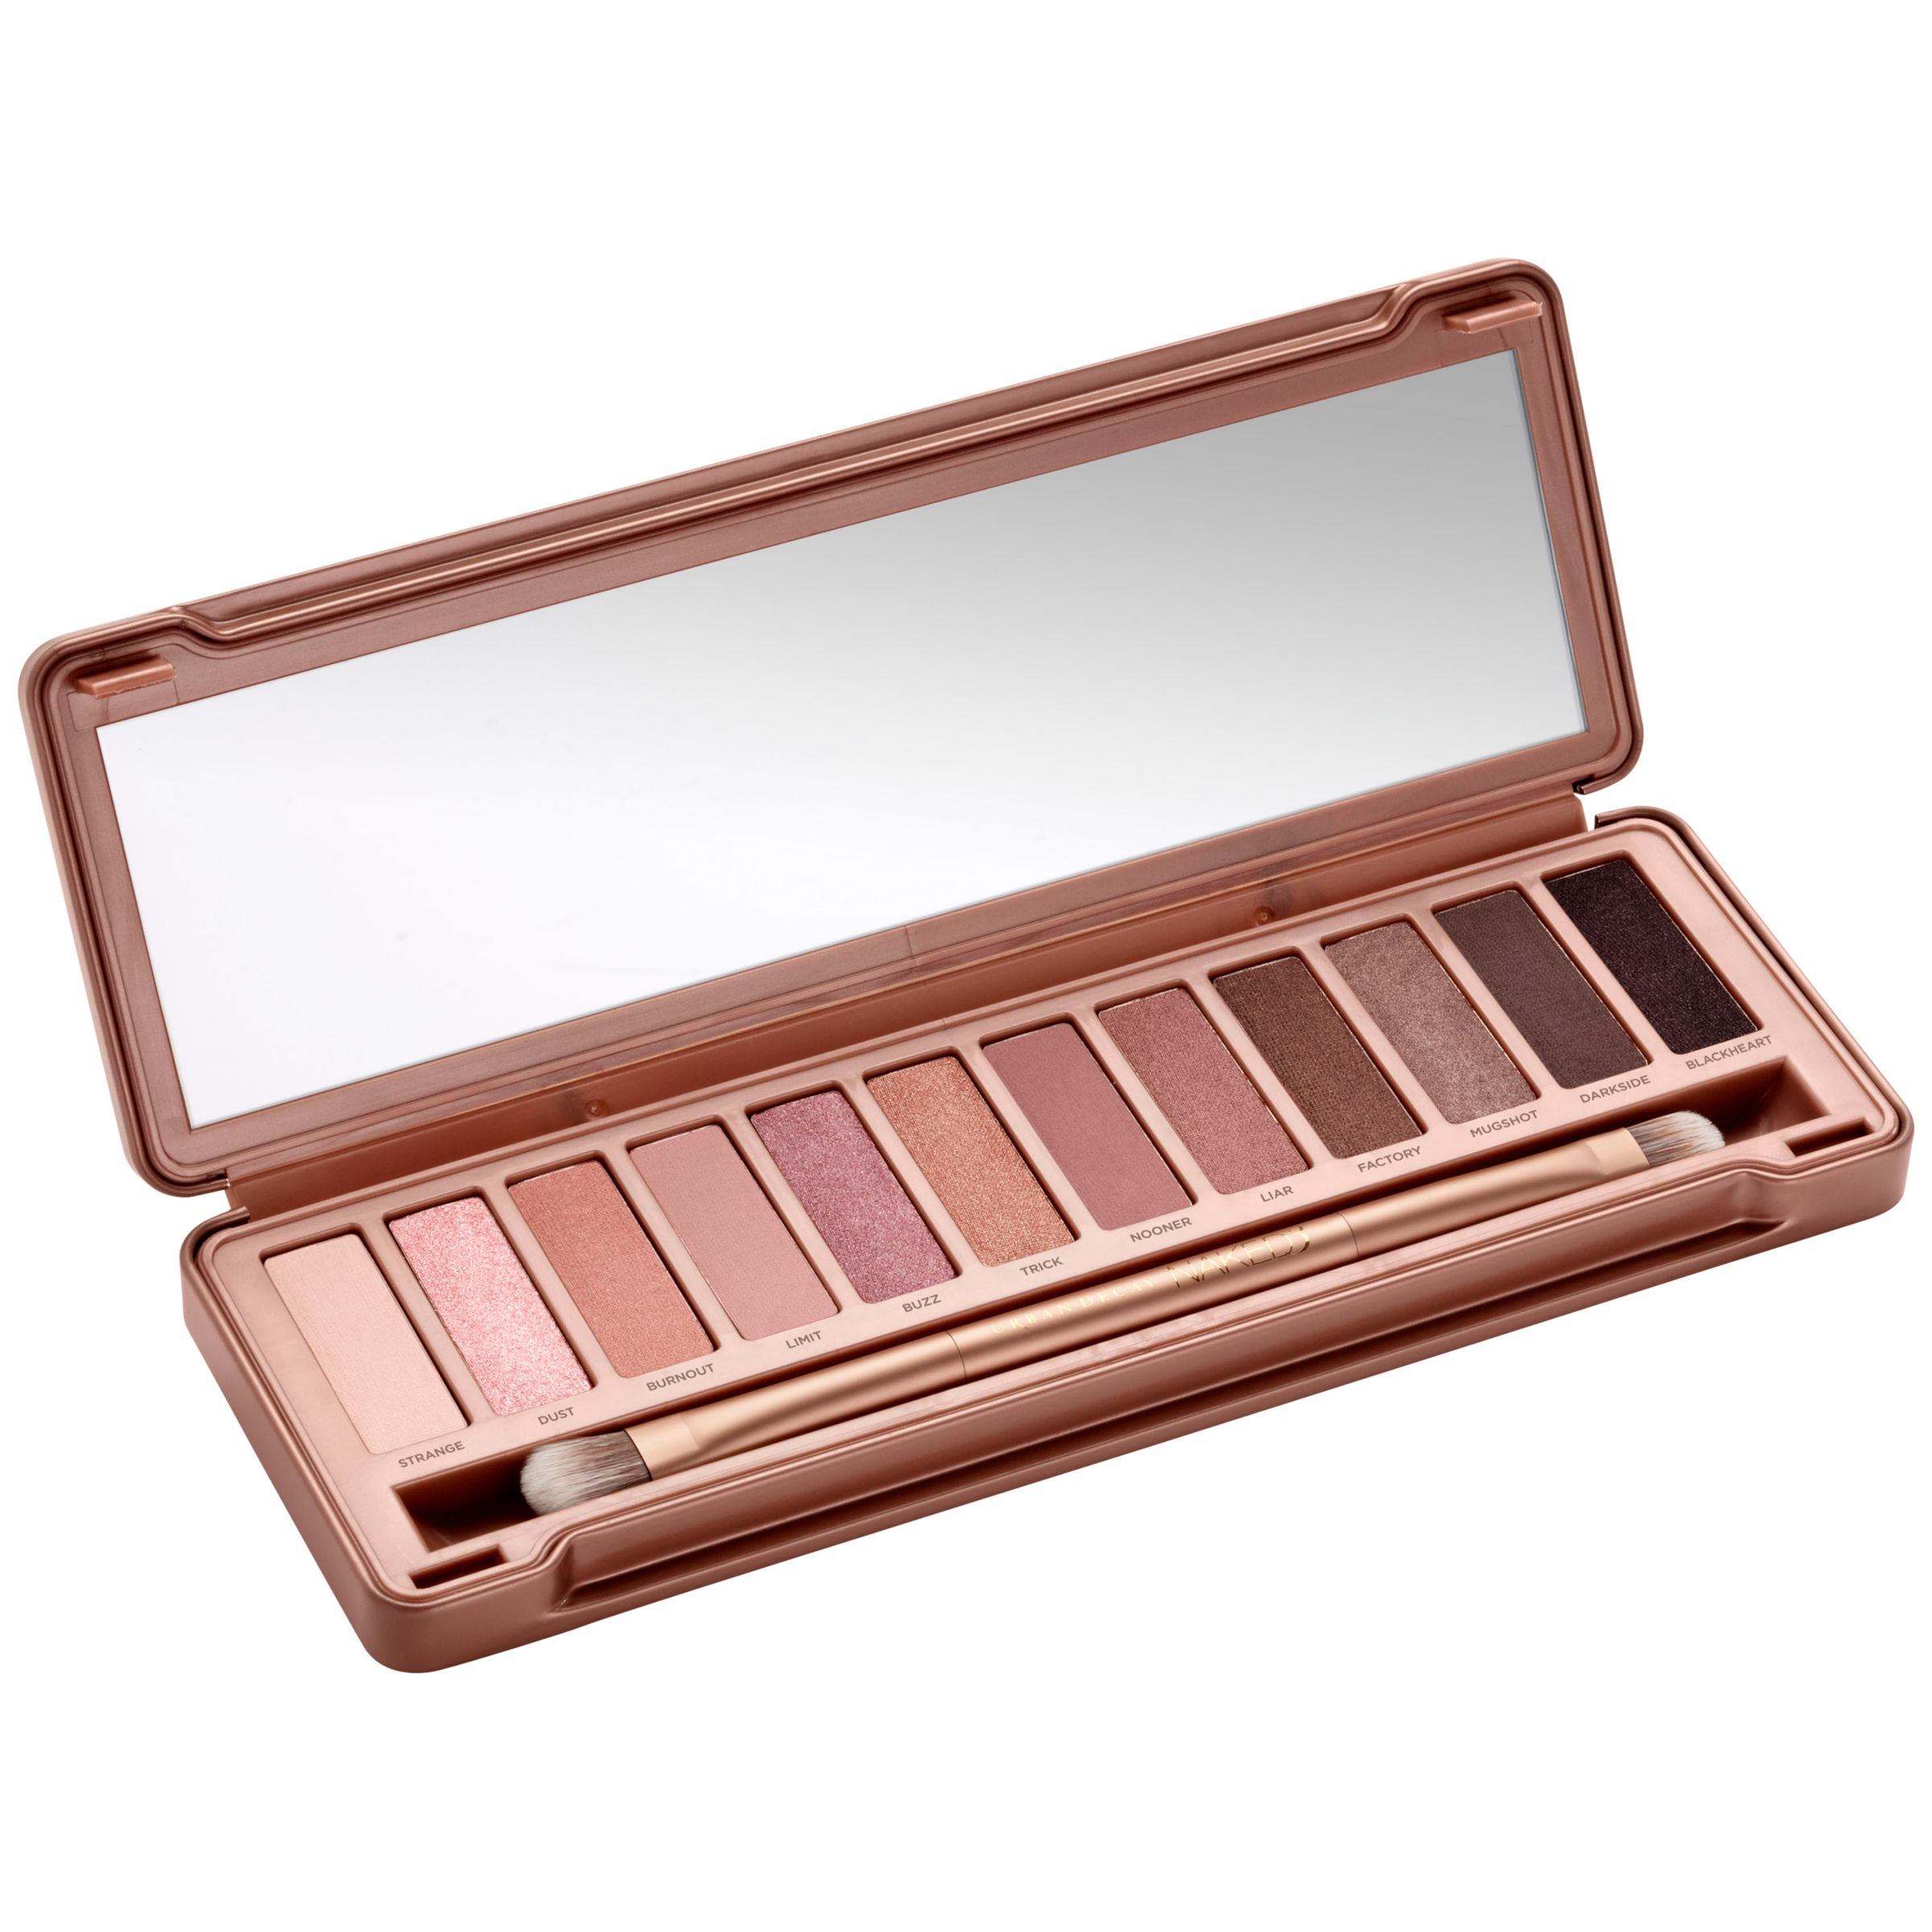 Top Tips for Application of Urban Decay Naked 3 Palette